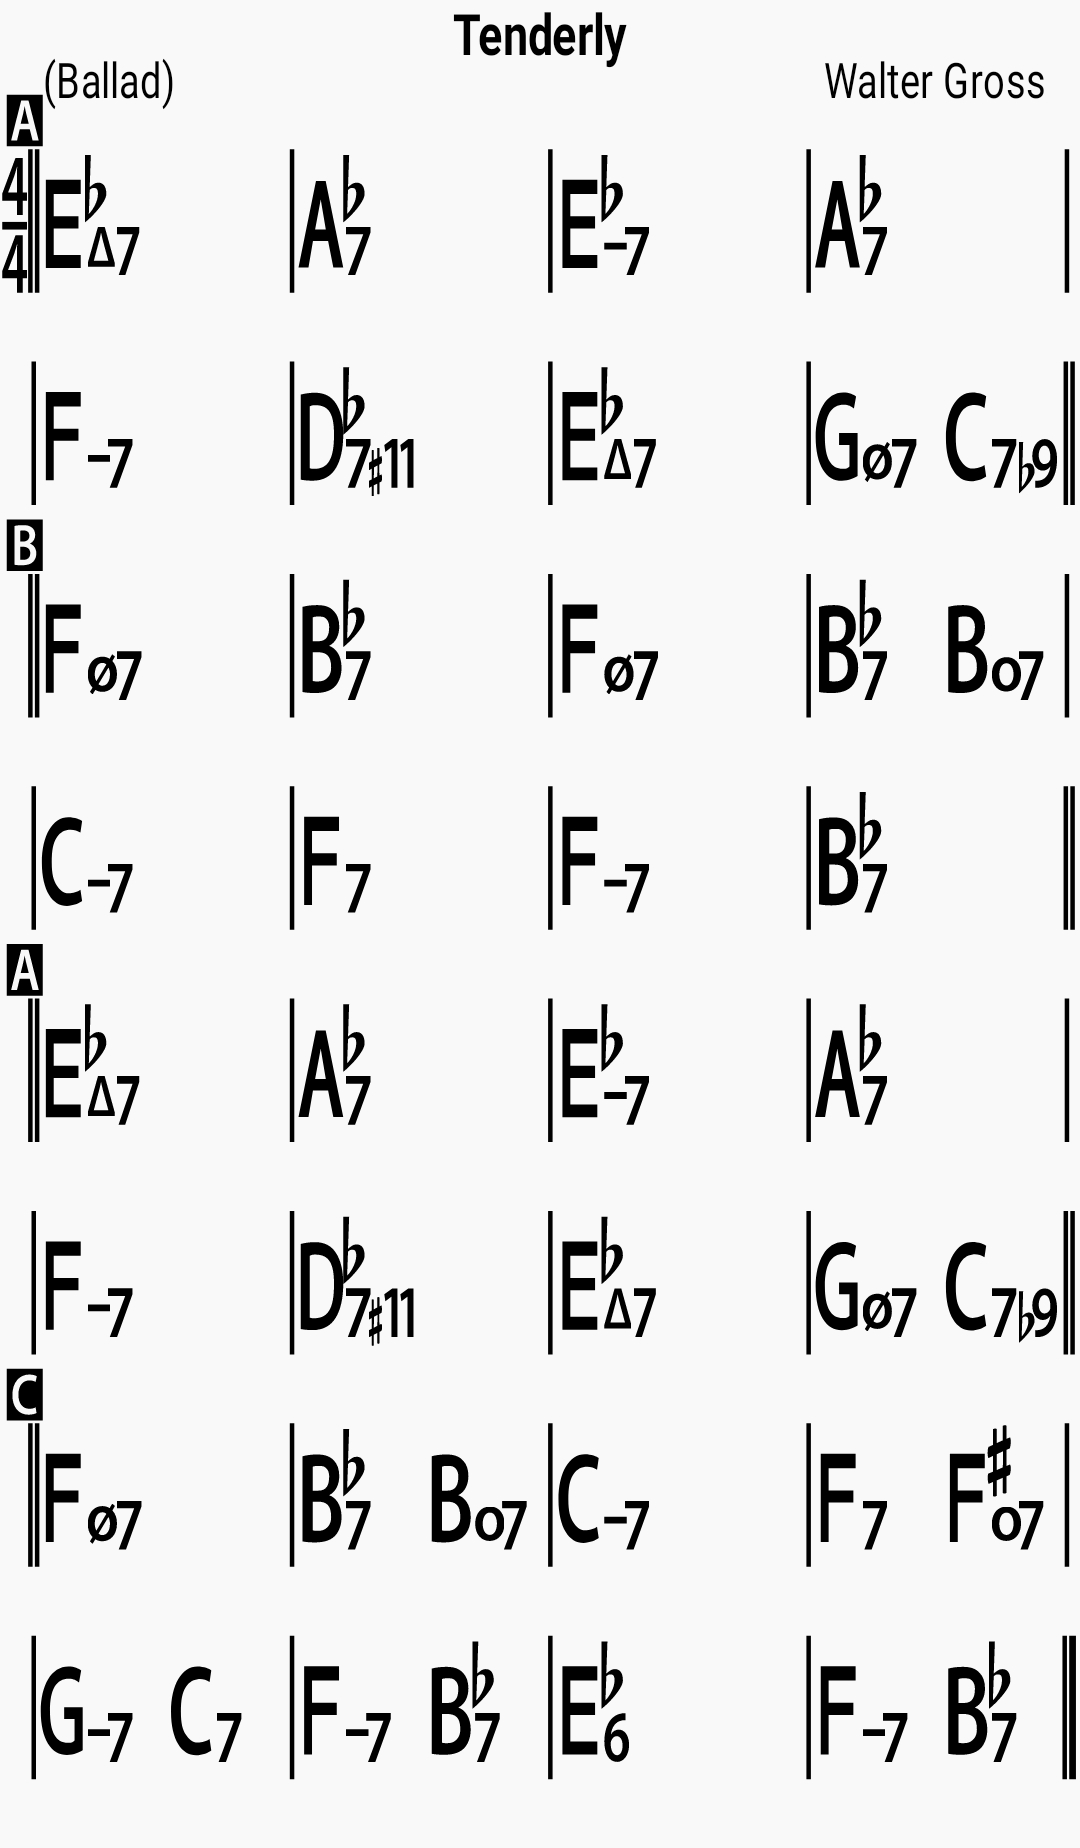 Chord chart for the jazz standard Tenderly